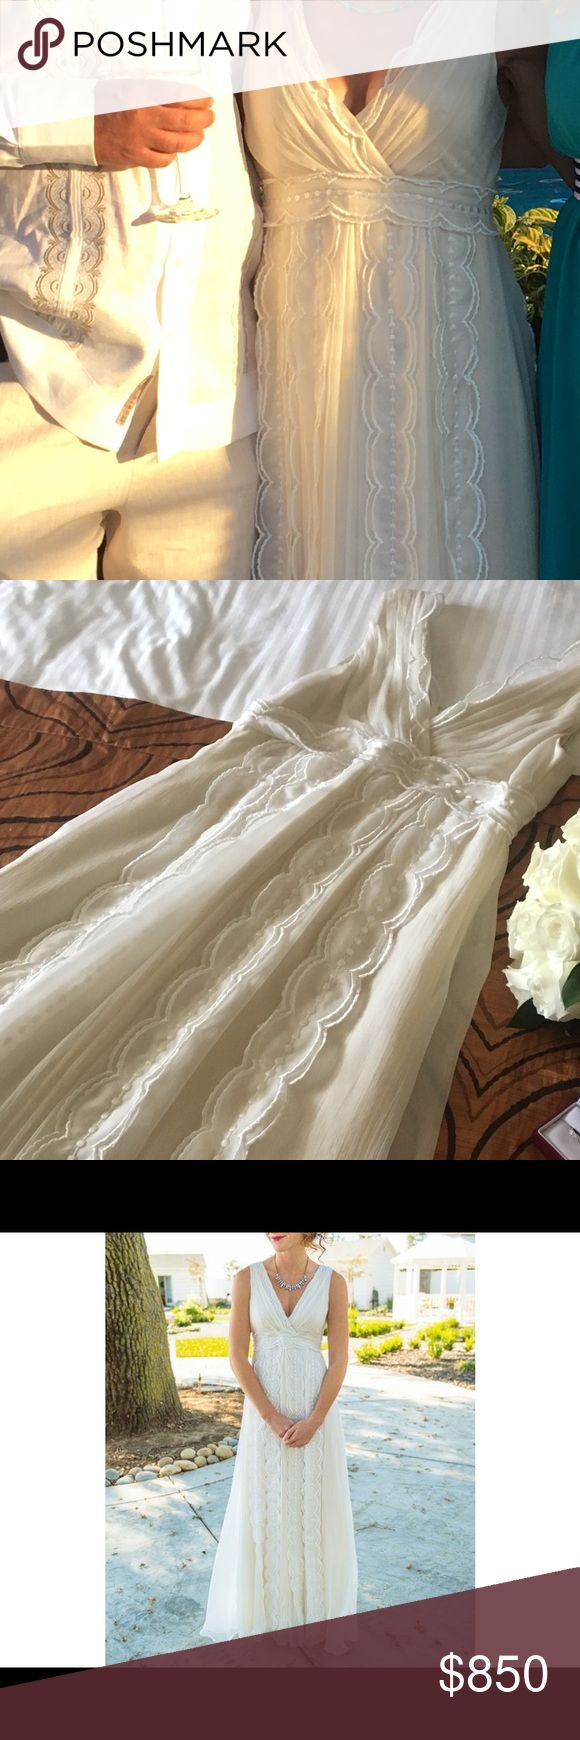 "Wedding dress Beautiful and elegant ivory Gently used wedding dress by SAJA (VN6656).  Super comfortable with its flowing design and very lightweight. Has snaps on the shoulder area to keep your undergarment in place. Shell and lining 100% silk. Measurements: shoulder to hem 52"", armpit to armpit 15"", empire waist 14.5"" laying flat. Size 4. Perfect for a beach or garden wedding! Has been dry cleaned. Saja Dresses Wedding"